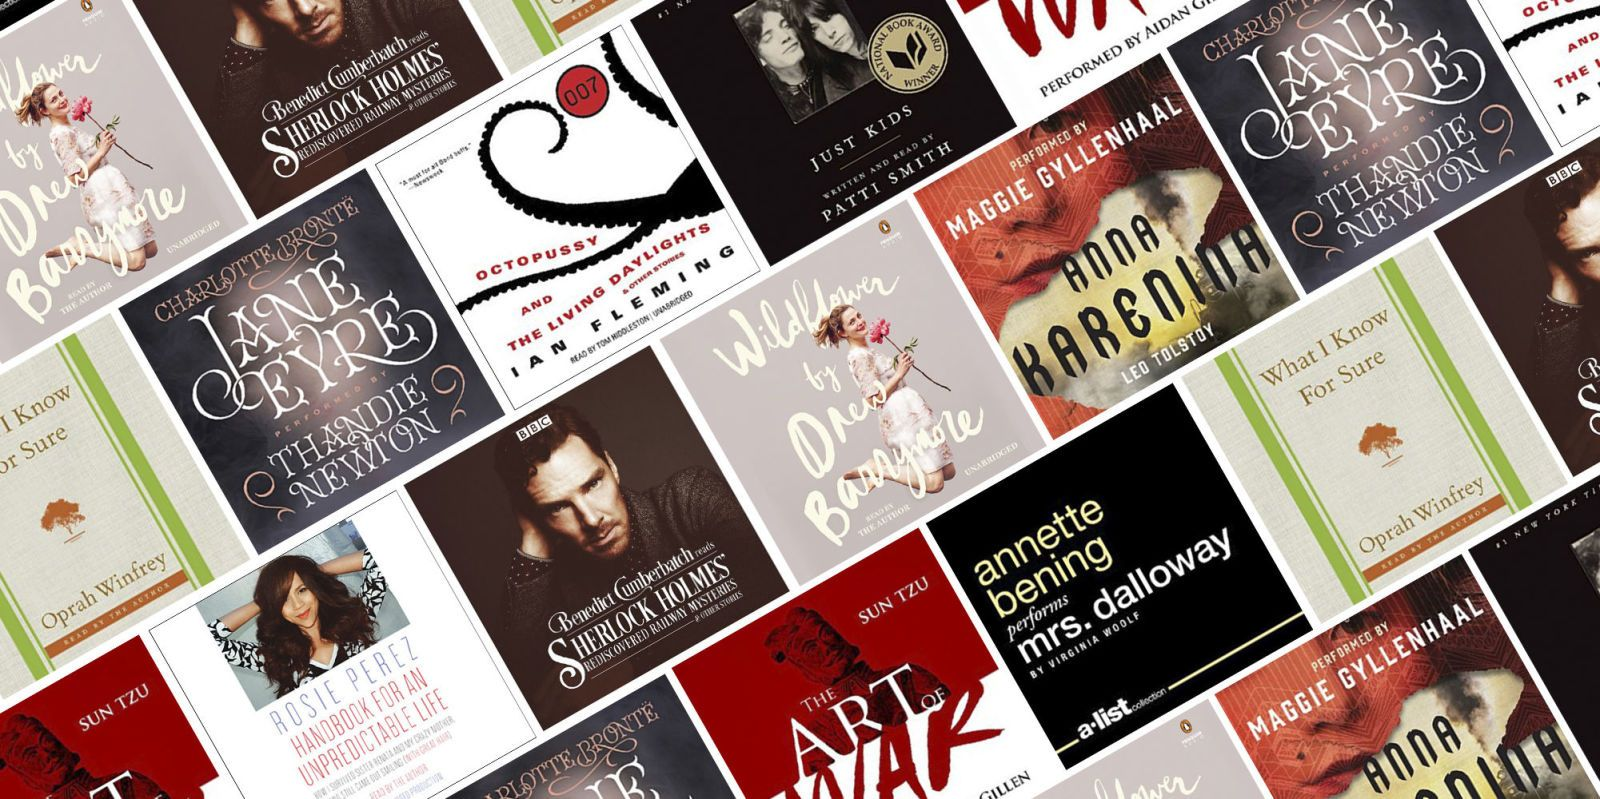 10 audiobooks read by